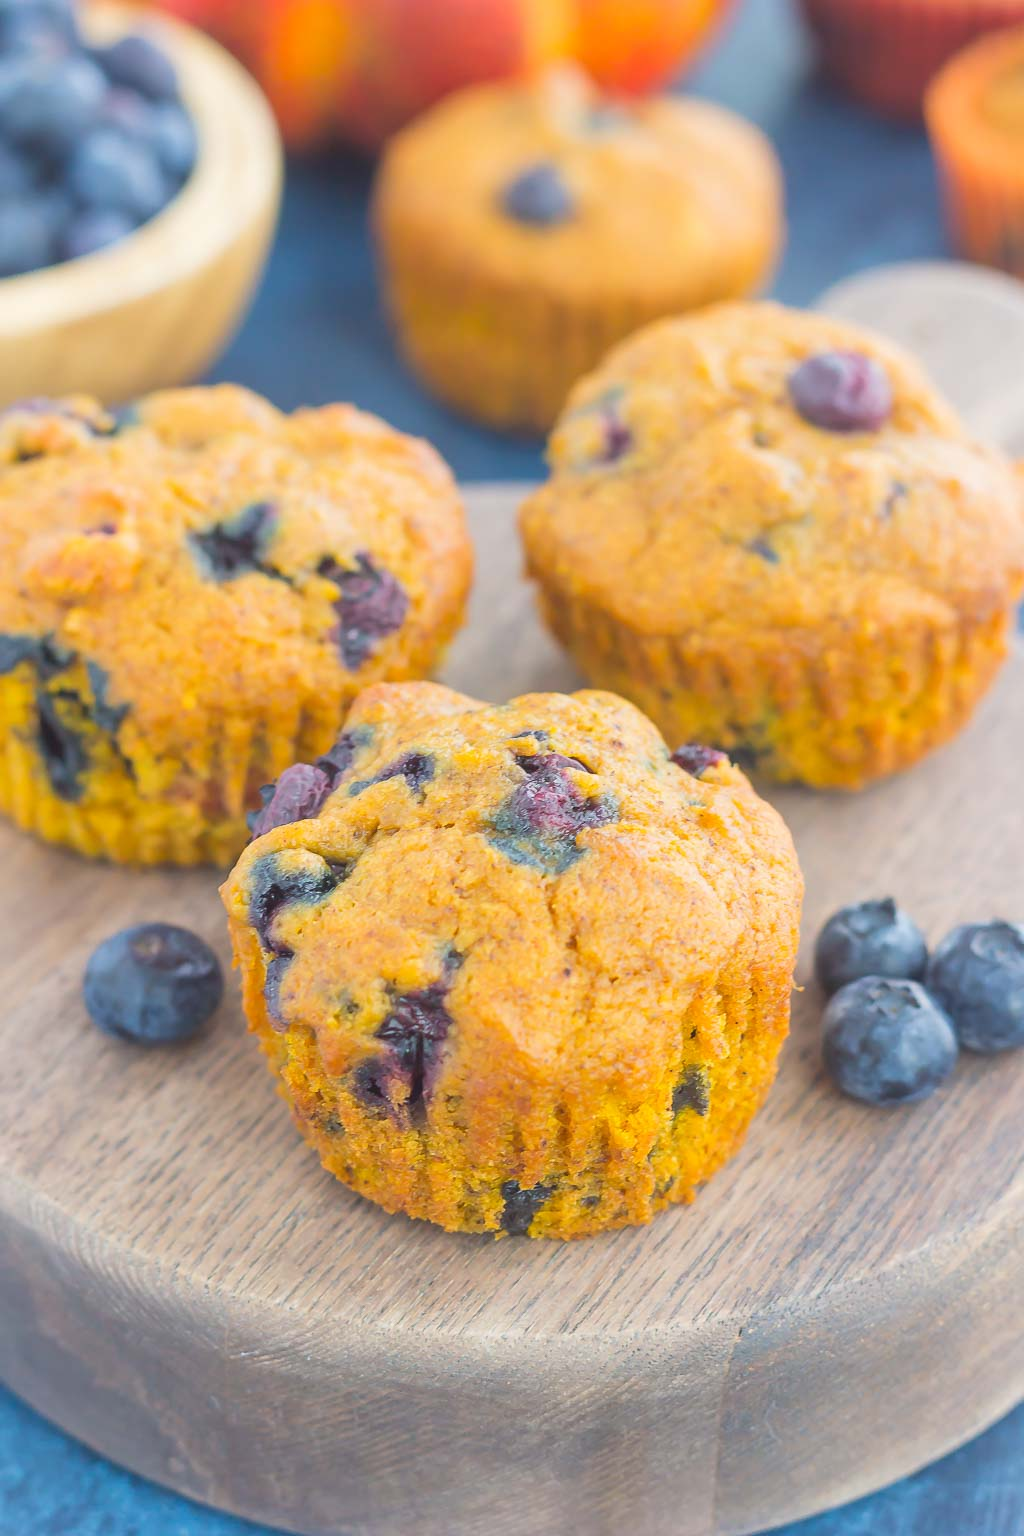 These Pumpkin Blueberry Muffins are soft, moist and bursting with cozy fall flavors. Packed with sweet pumpkin and juicy blueberries, this easy treat makes the perfect fall breakfast or snack!